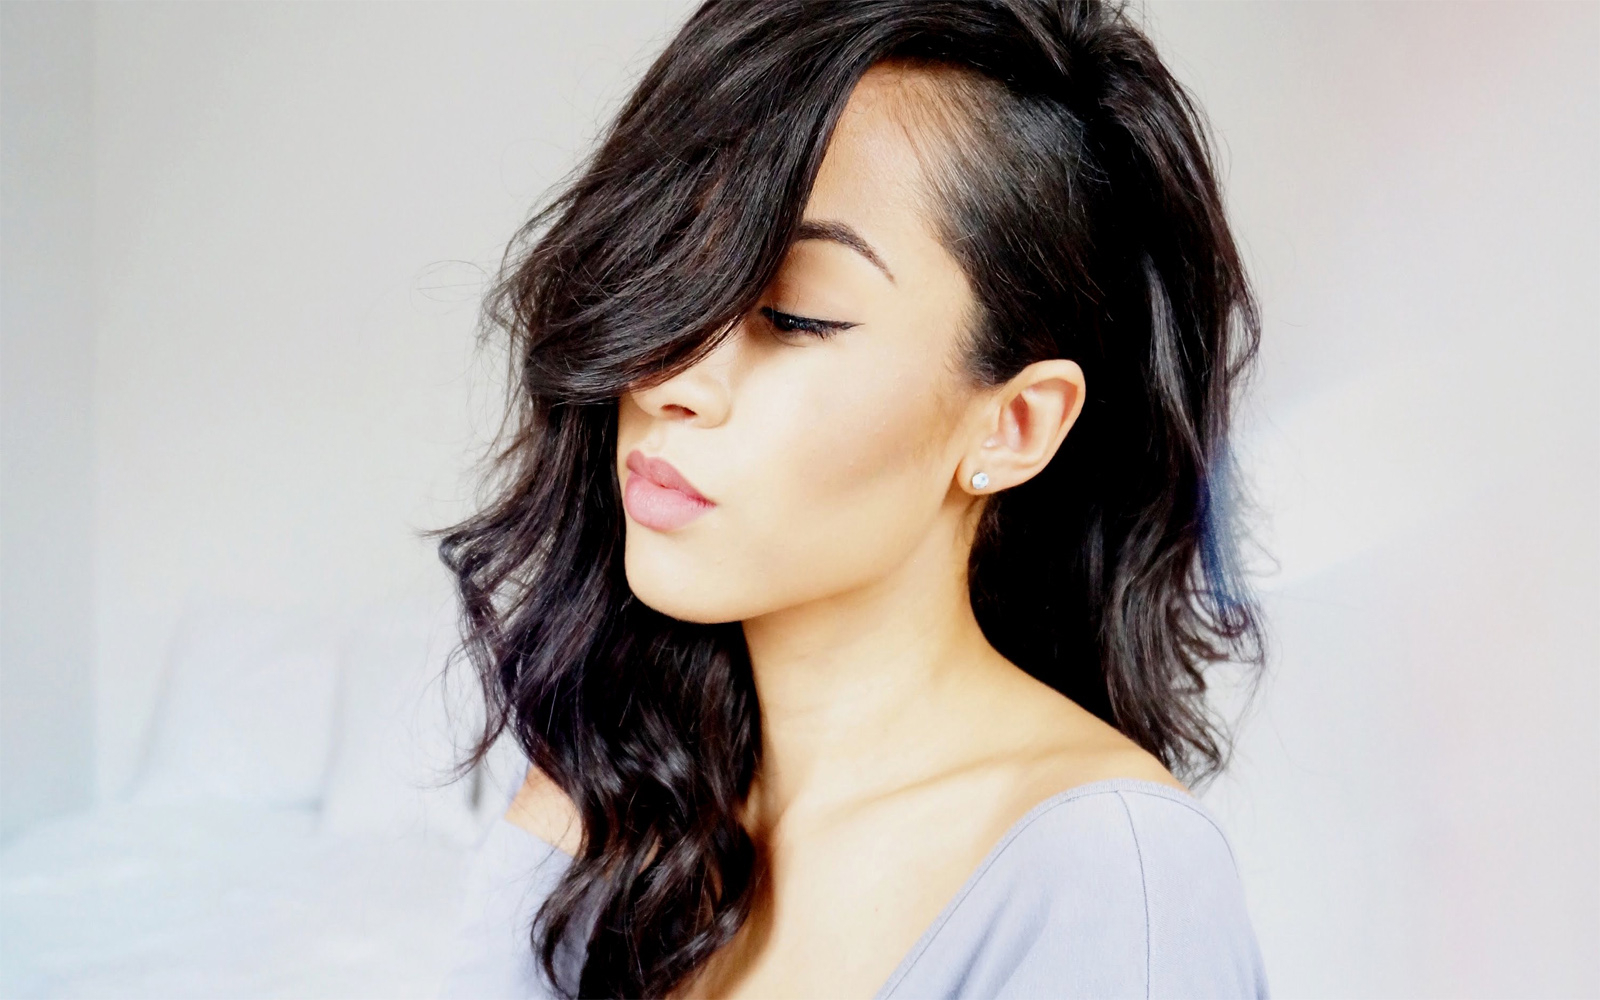 Women's Hairstyles With Shaved Sides 2018 | Images In Short Haircuts With One Side Shaved (View 25 of 25)